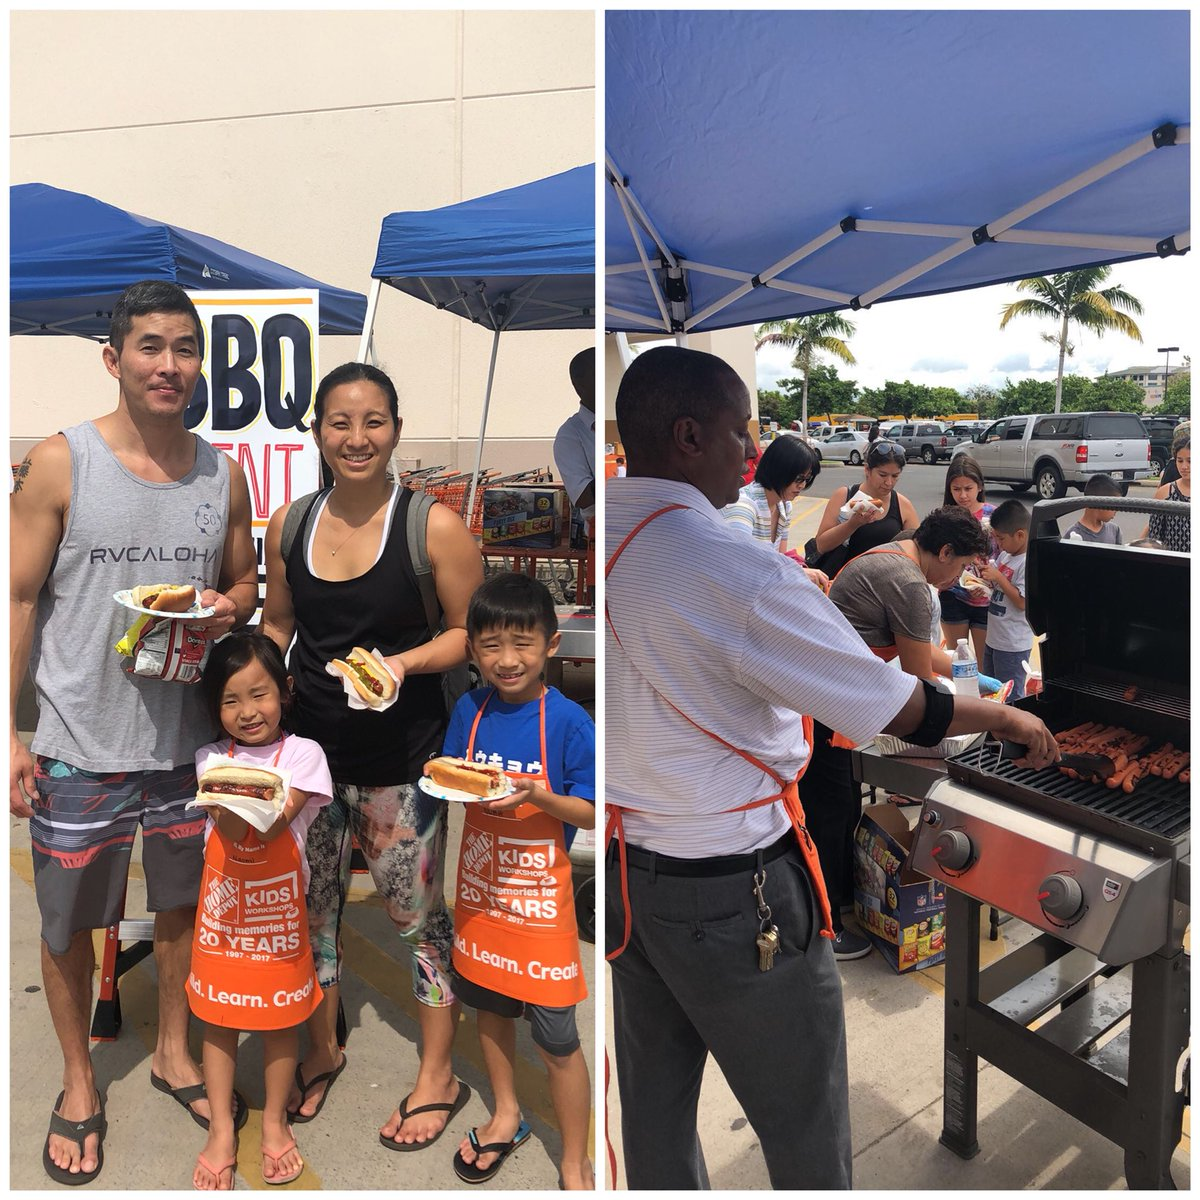 Home Depot Kapolei On Twitter This Is How We Do Grill